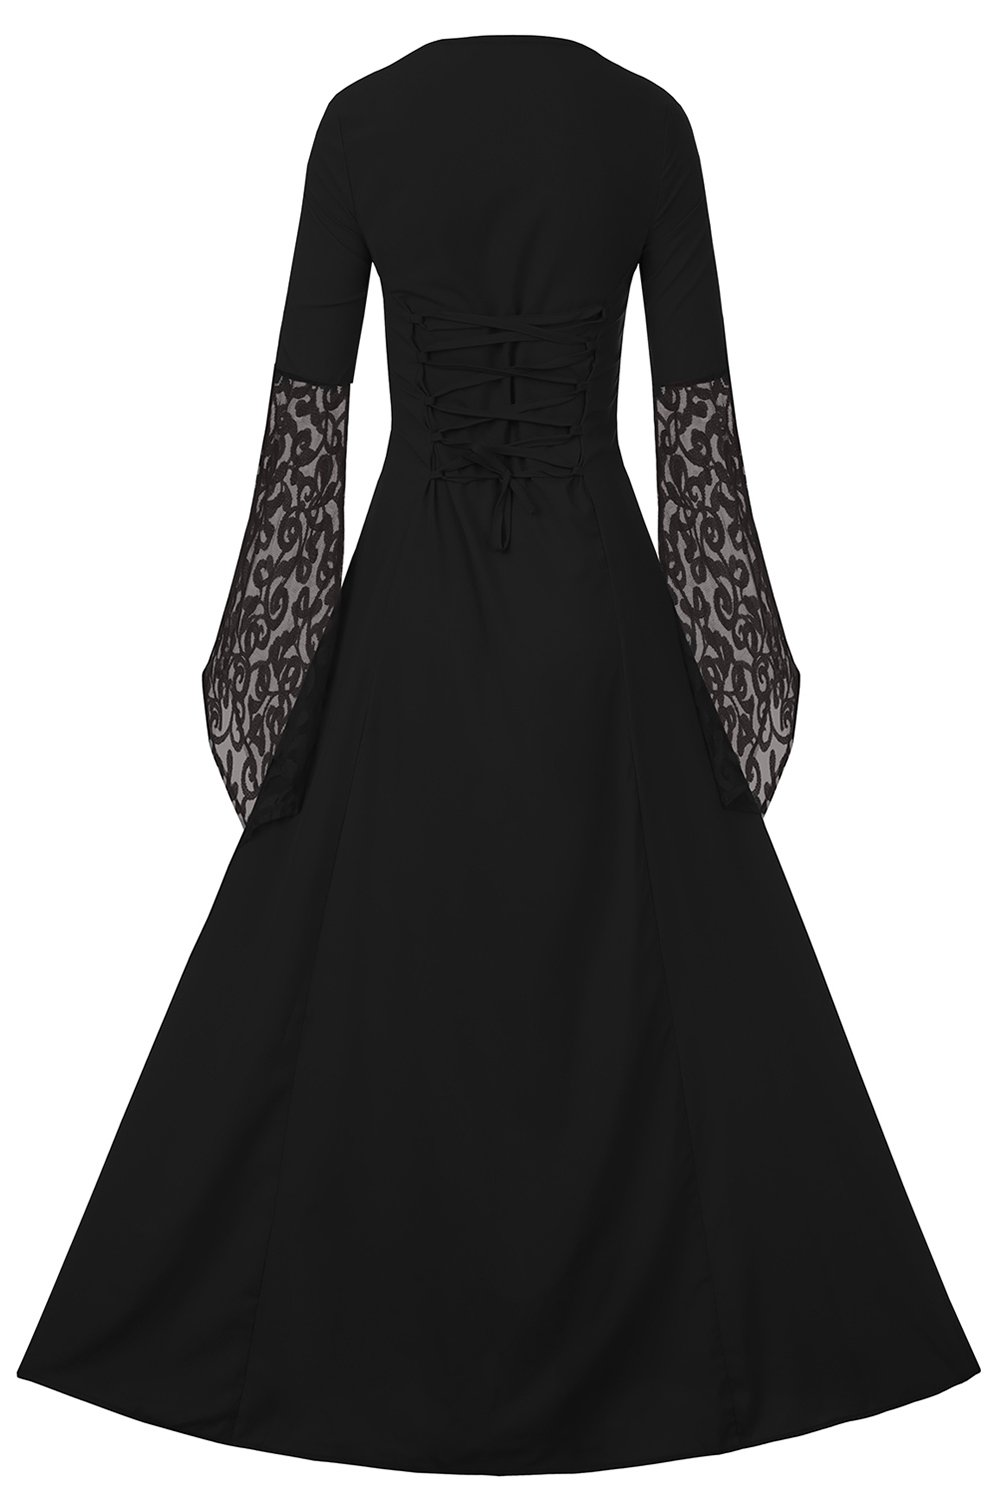 EastLife Women's Halloween Costumes Renaissance Medieval Dress Lace Up Vintage Floor Length Long Witch Dresses, Black, XXL by EastLife (Image #2)